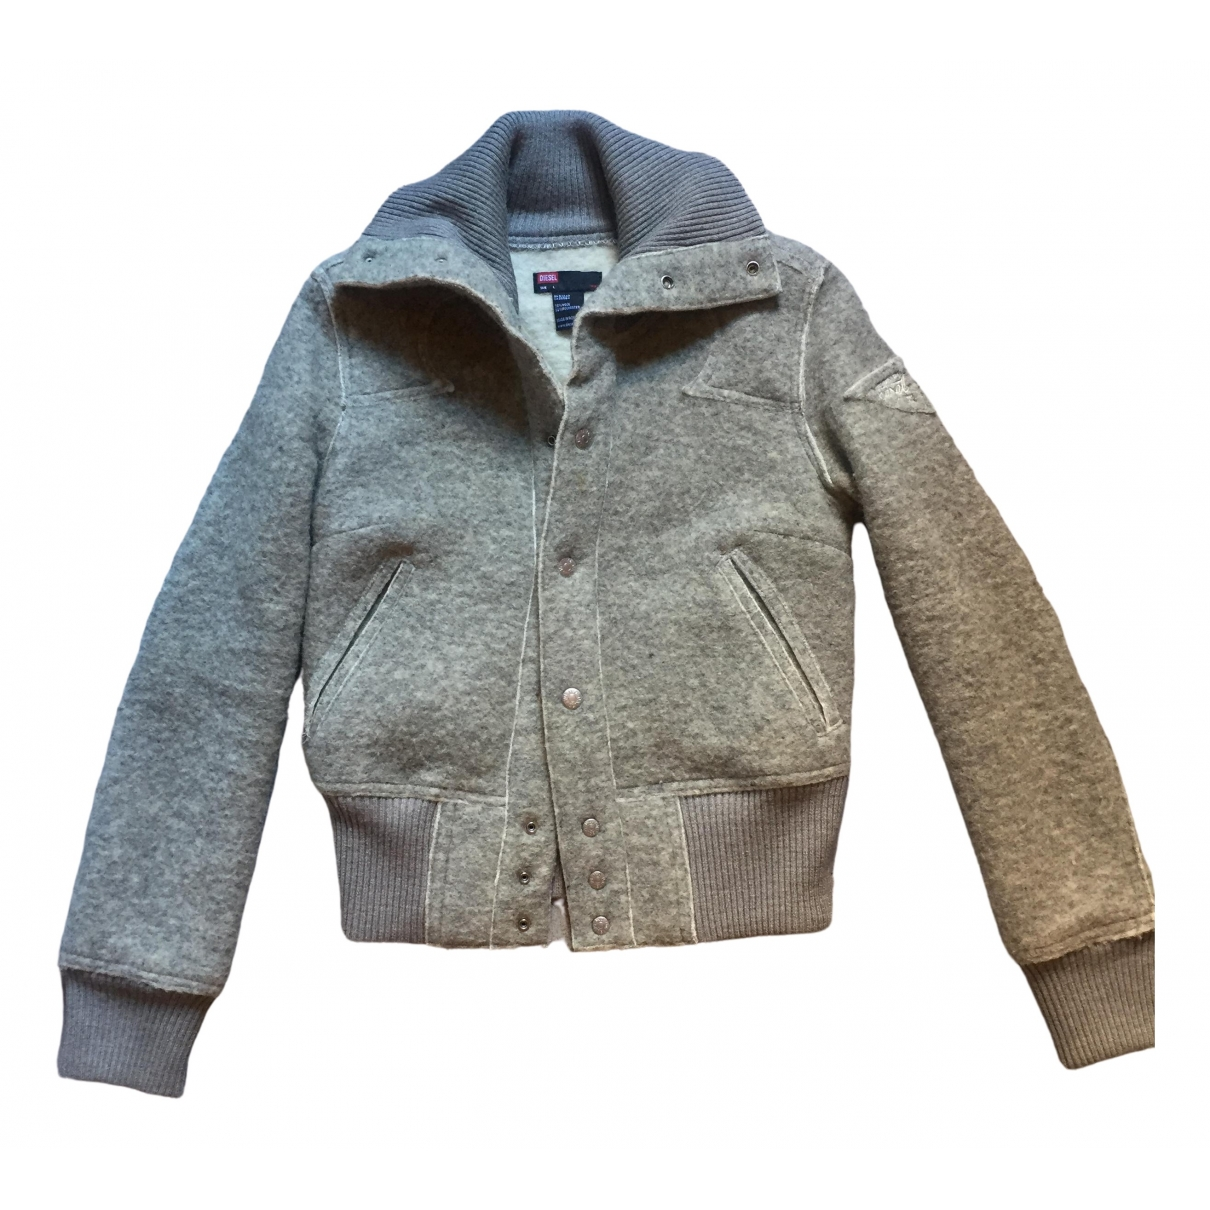 Diesel \N Grey Wool jacket for Women L International